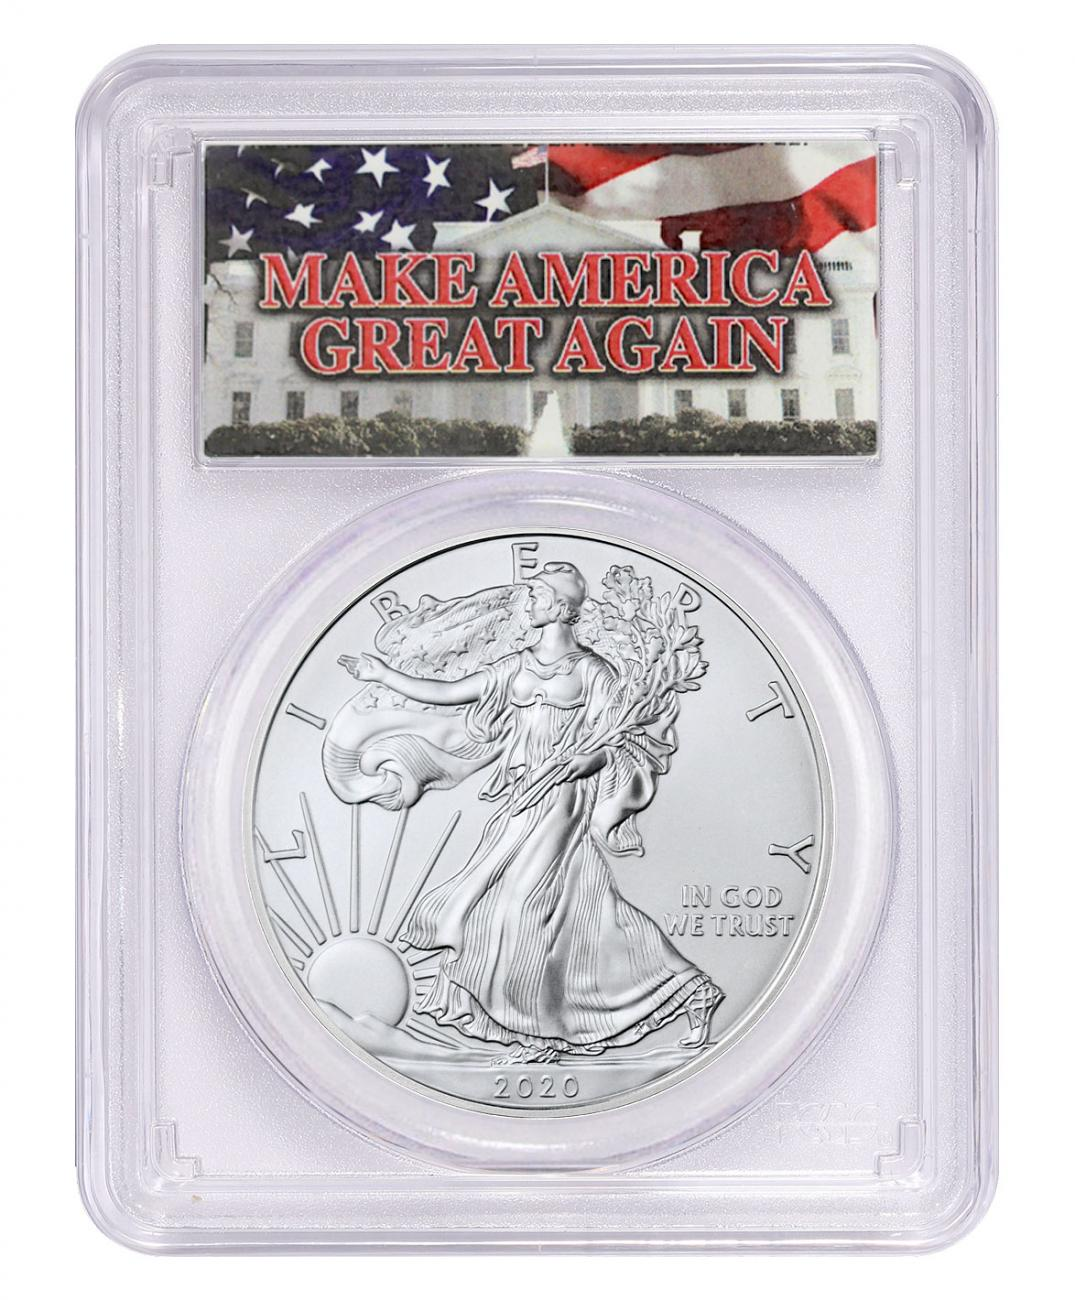 2020 1 oz American Silver Eagle $1 Coin Make America Great Again PCGS MS70 FS Trump Label